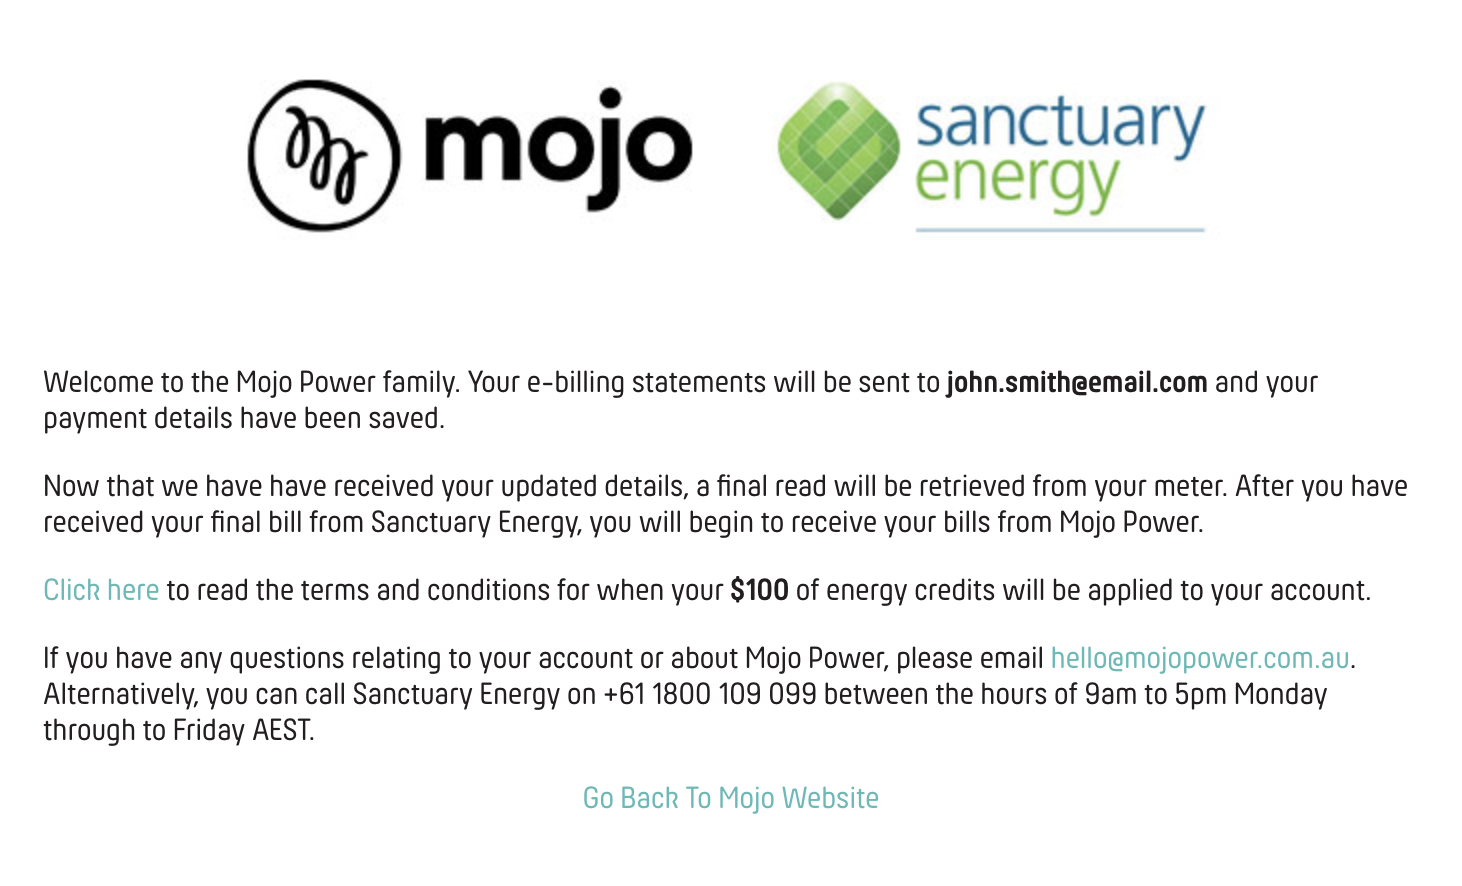 Sanctuary Energy Terms & Conditions - Mojo Power